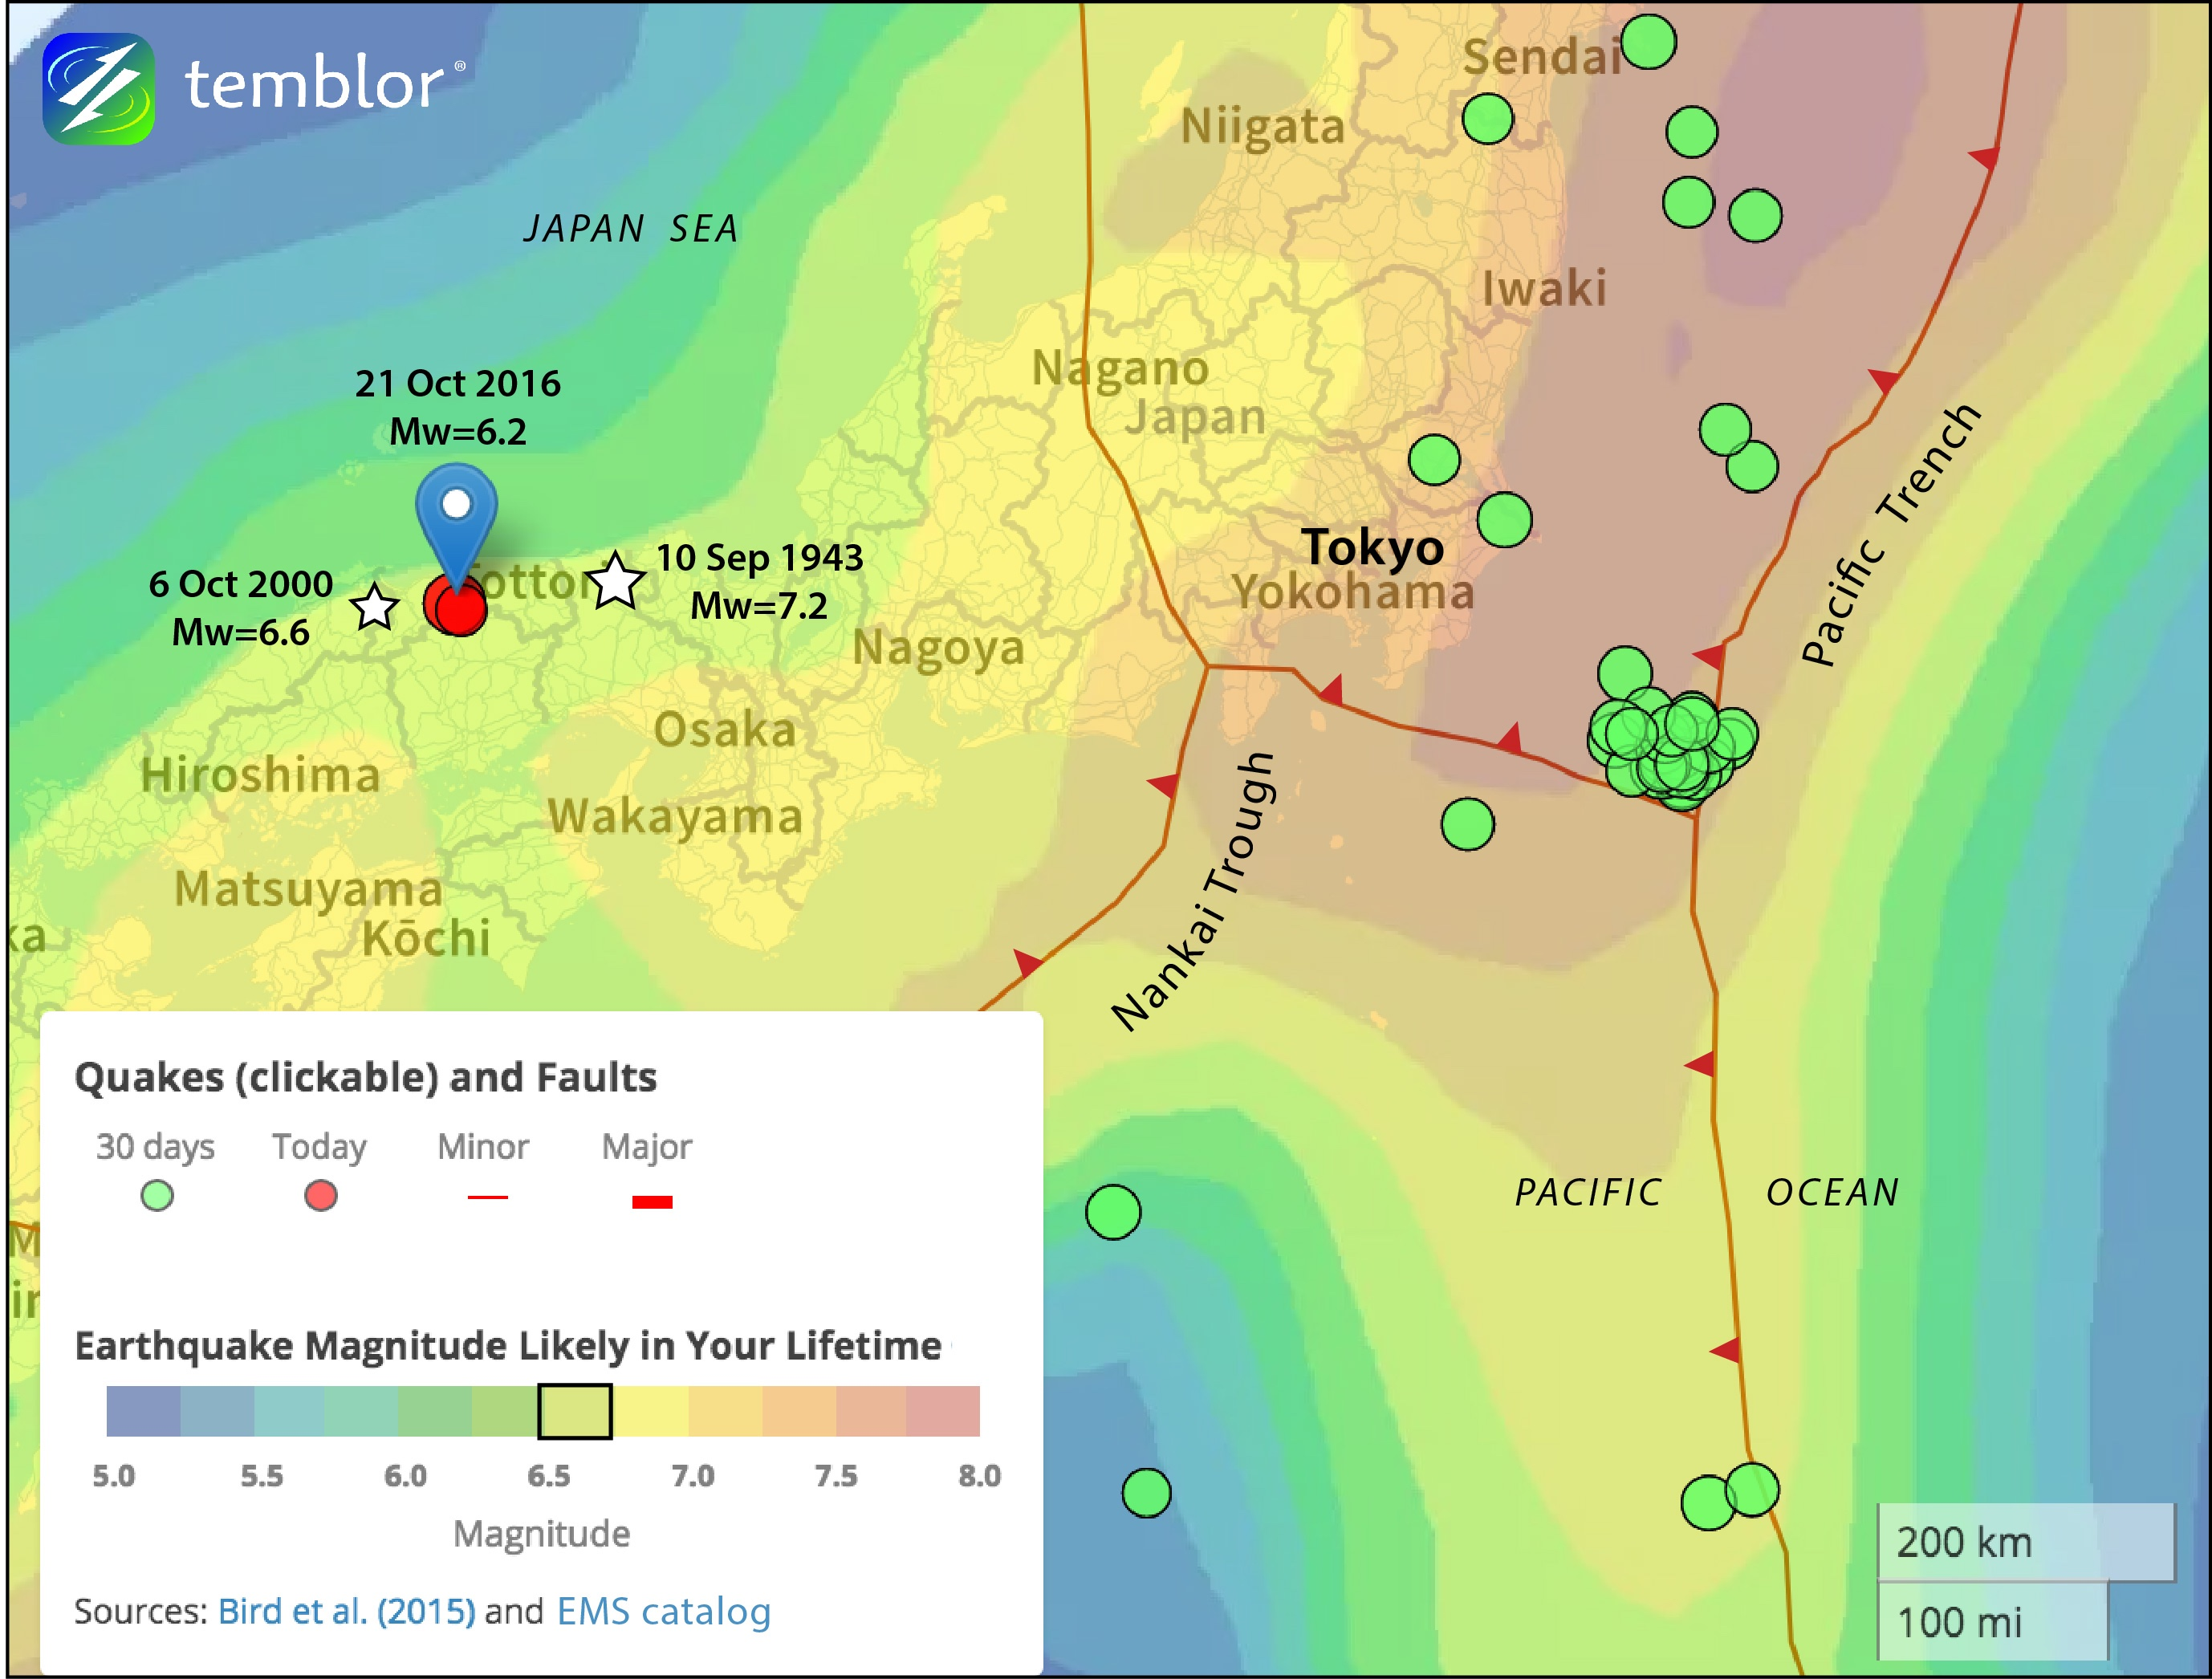 ... Japan earthquake strikes between two recent large shocks | Temblor.net